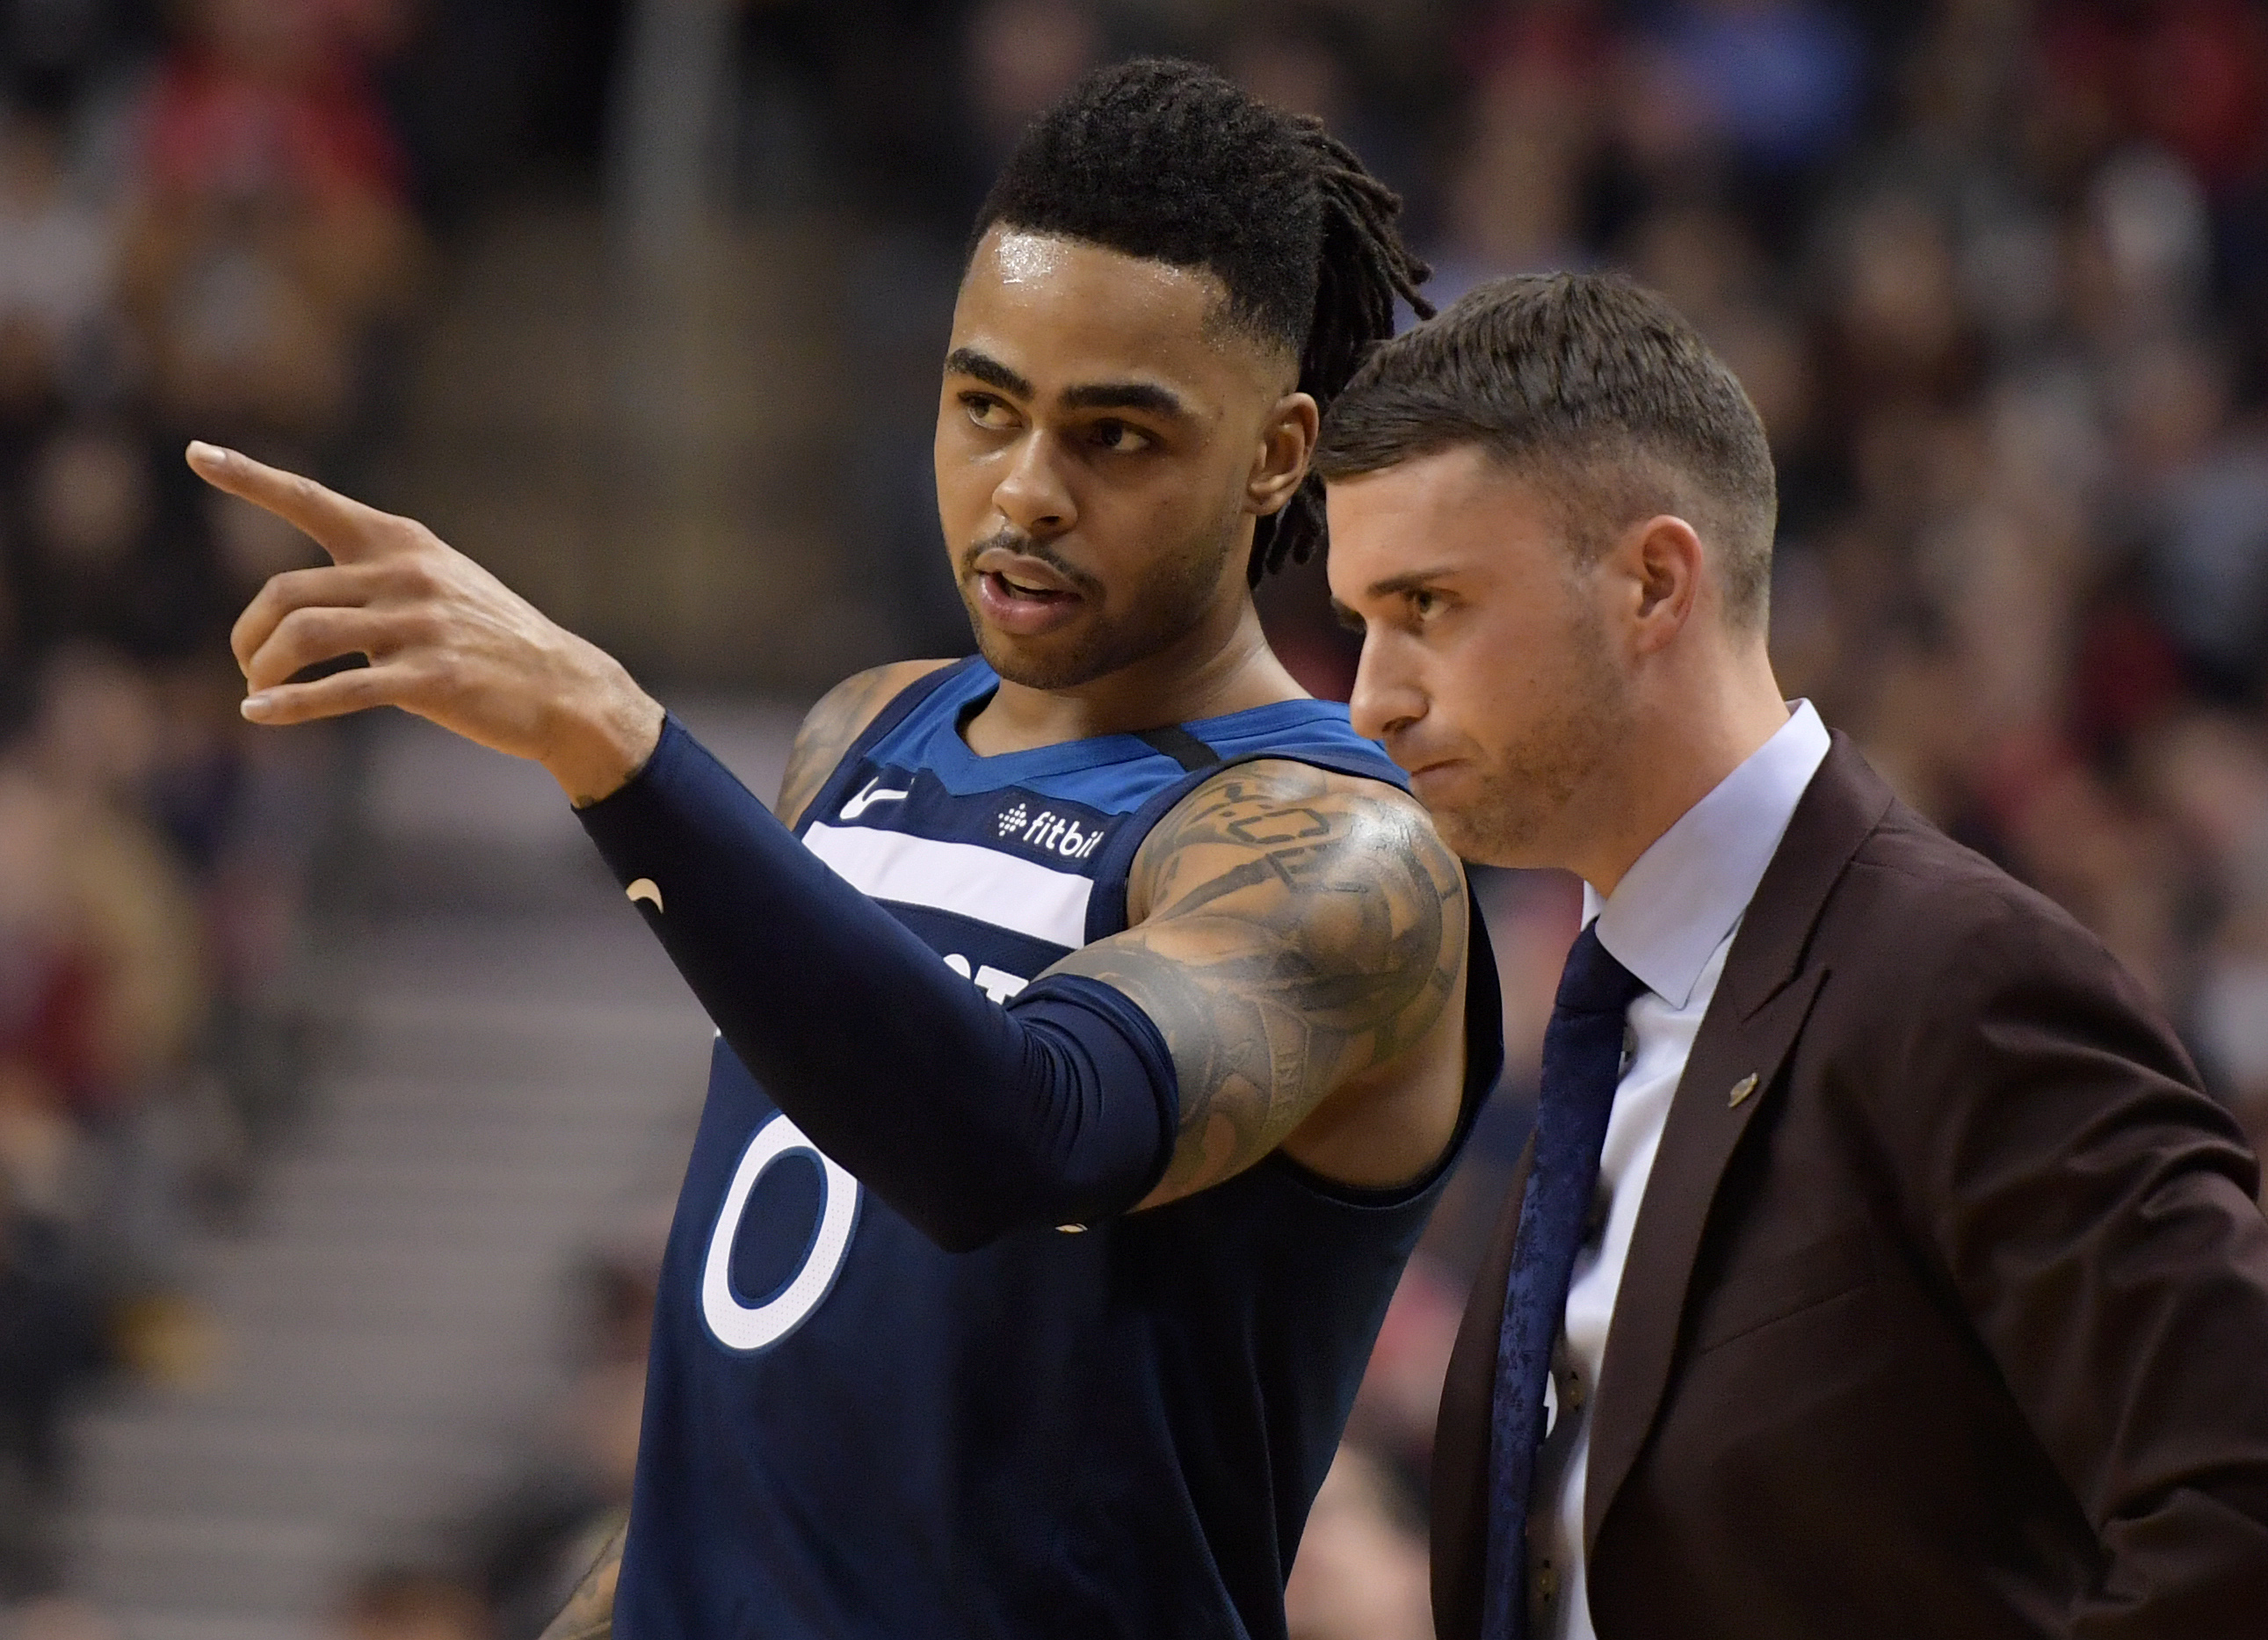 D'Angelo Russell calls out 'clown' reporter on Twitter